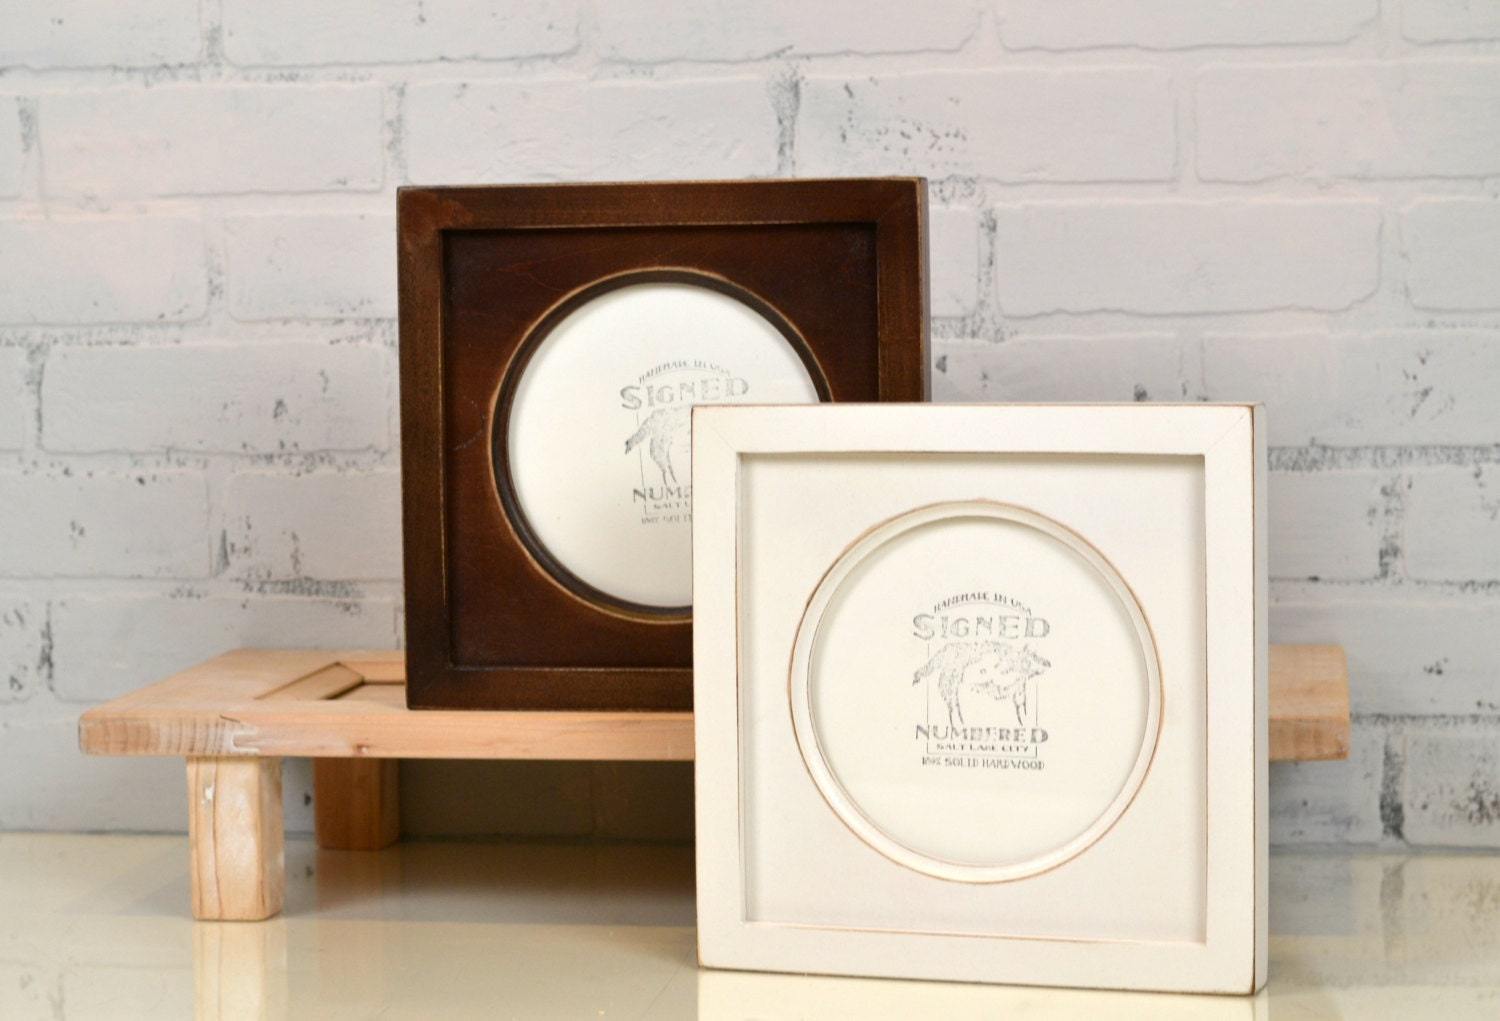 6x6 inch Circle Opening Photo / Picture Frame with Deep Flat Build ...